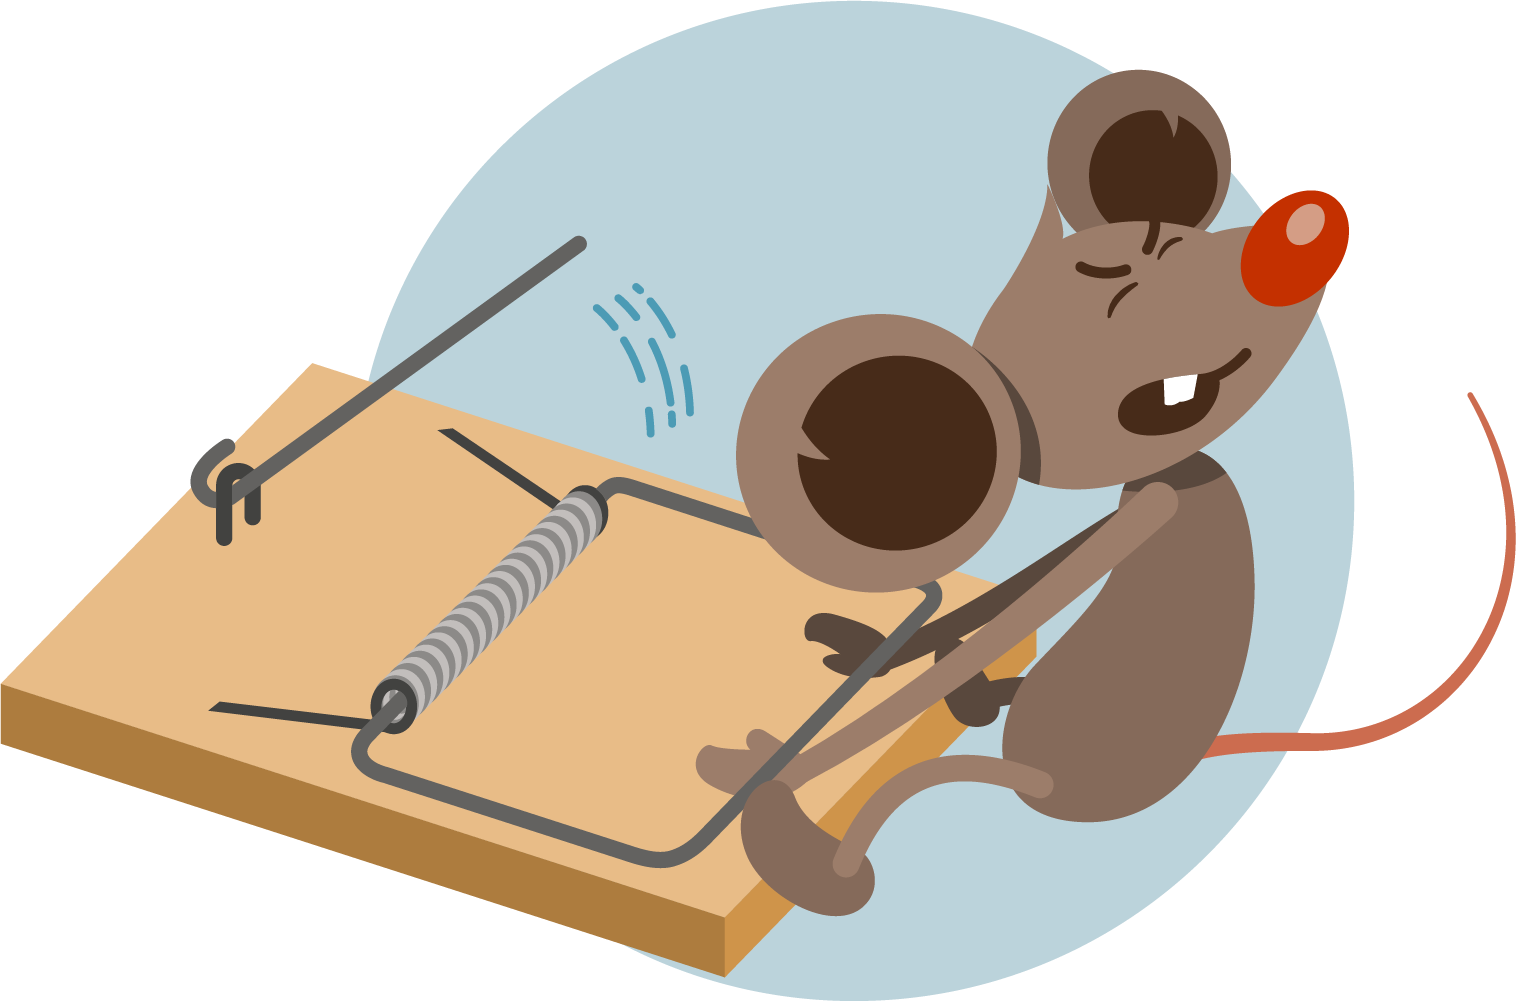 Rat clipart trap. Mickey mouse cartoon the